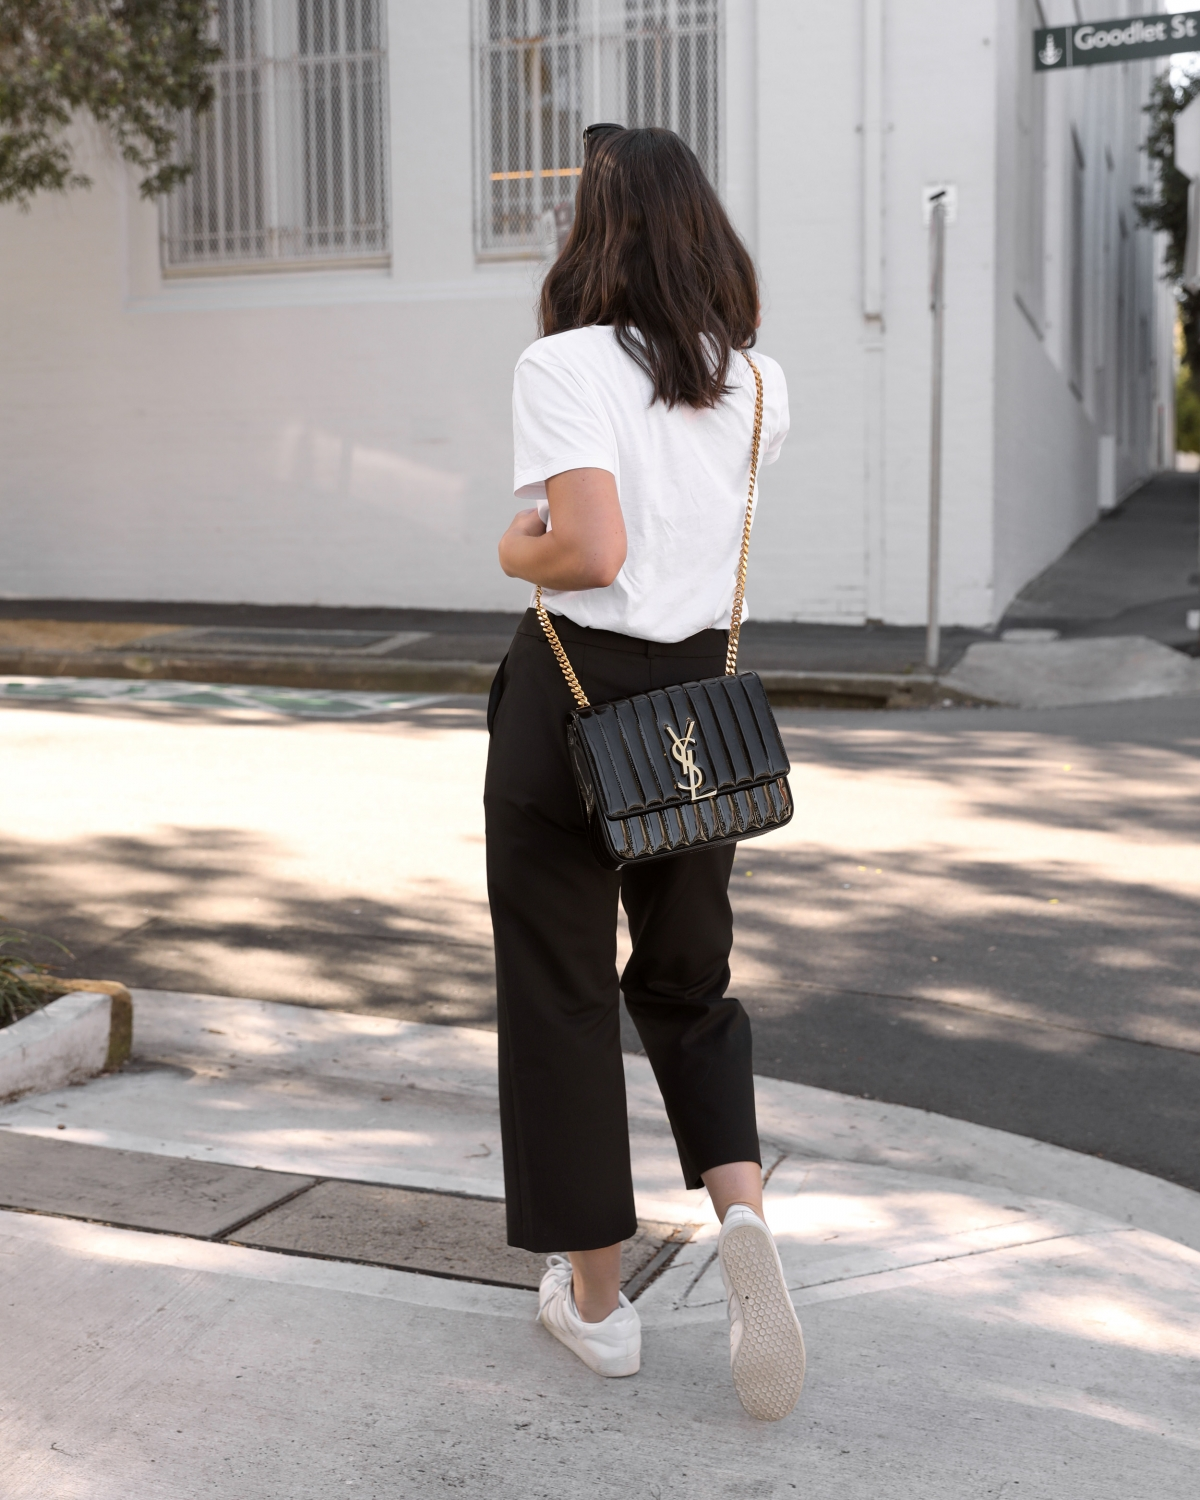 Saint Laurent Vicky Bag in black patent from Selfridges  Black and White Outfit   HarperandHarley